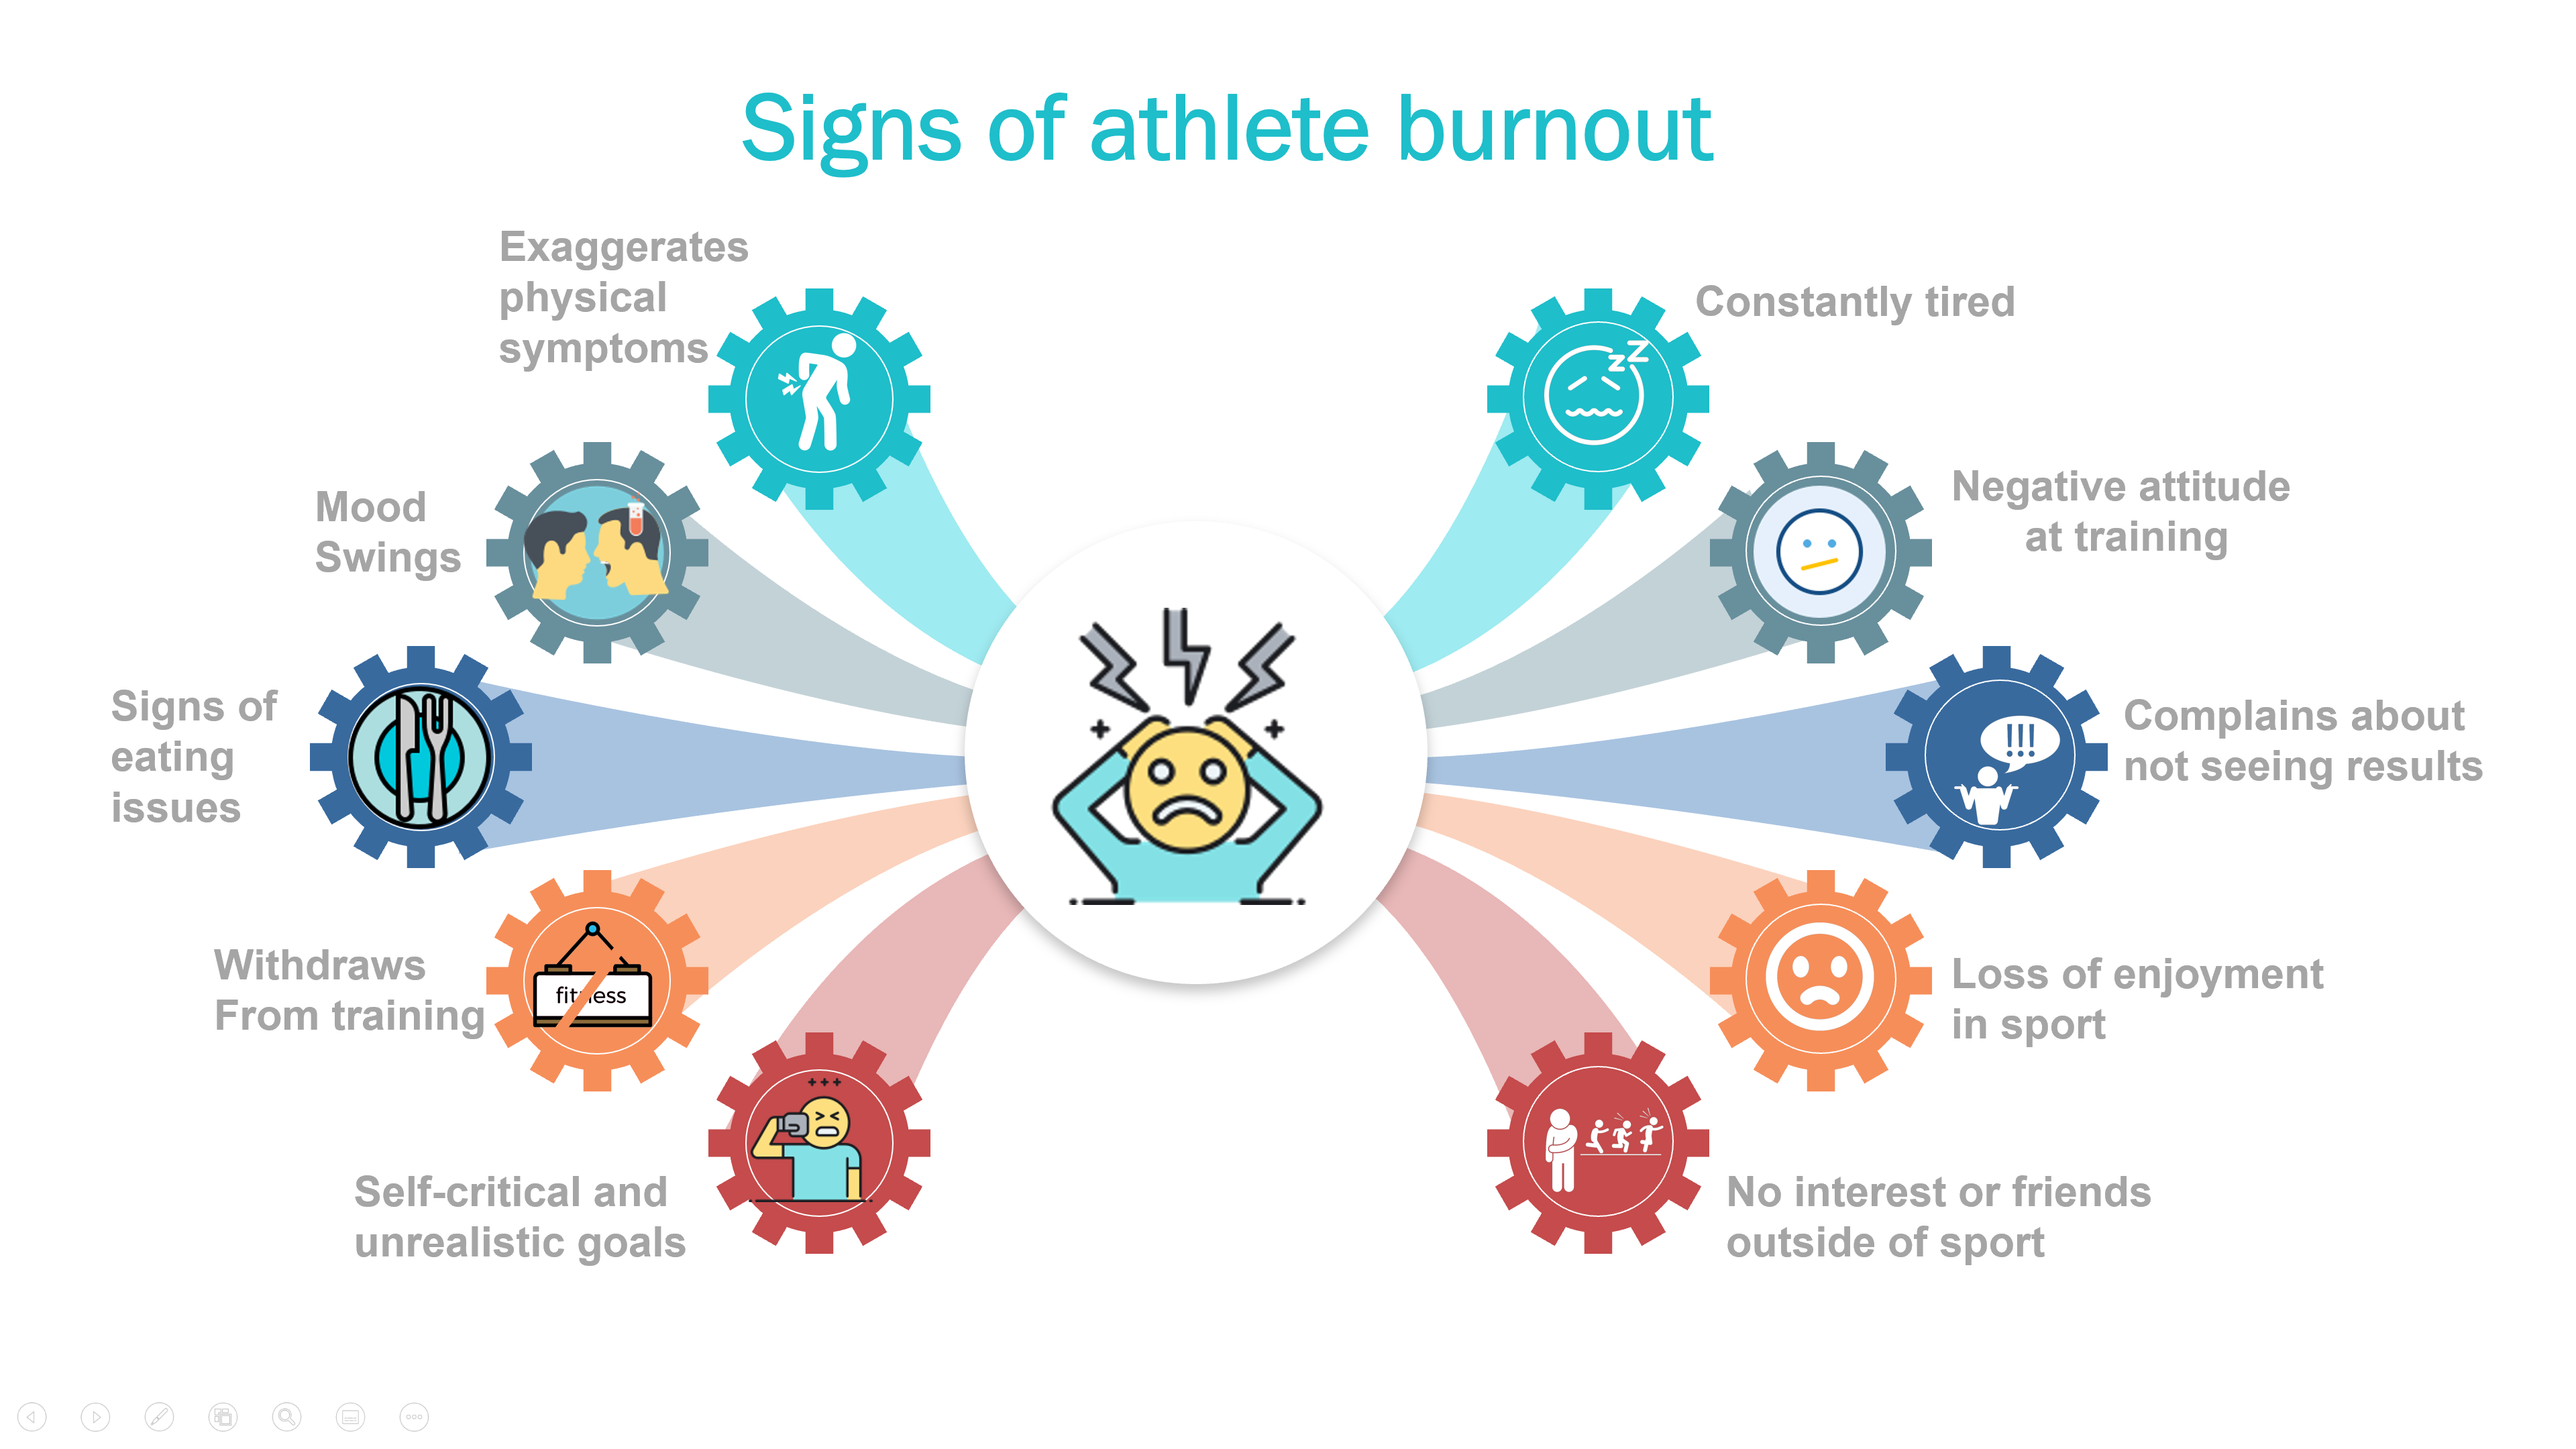 Athlete Burnout signs